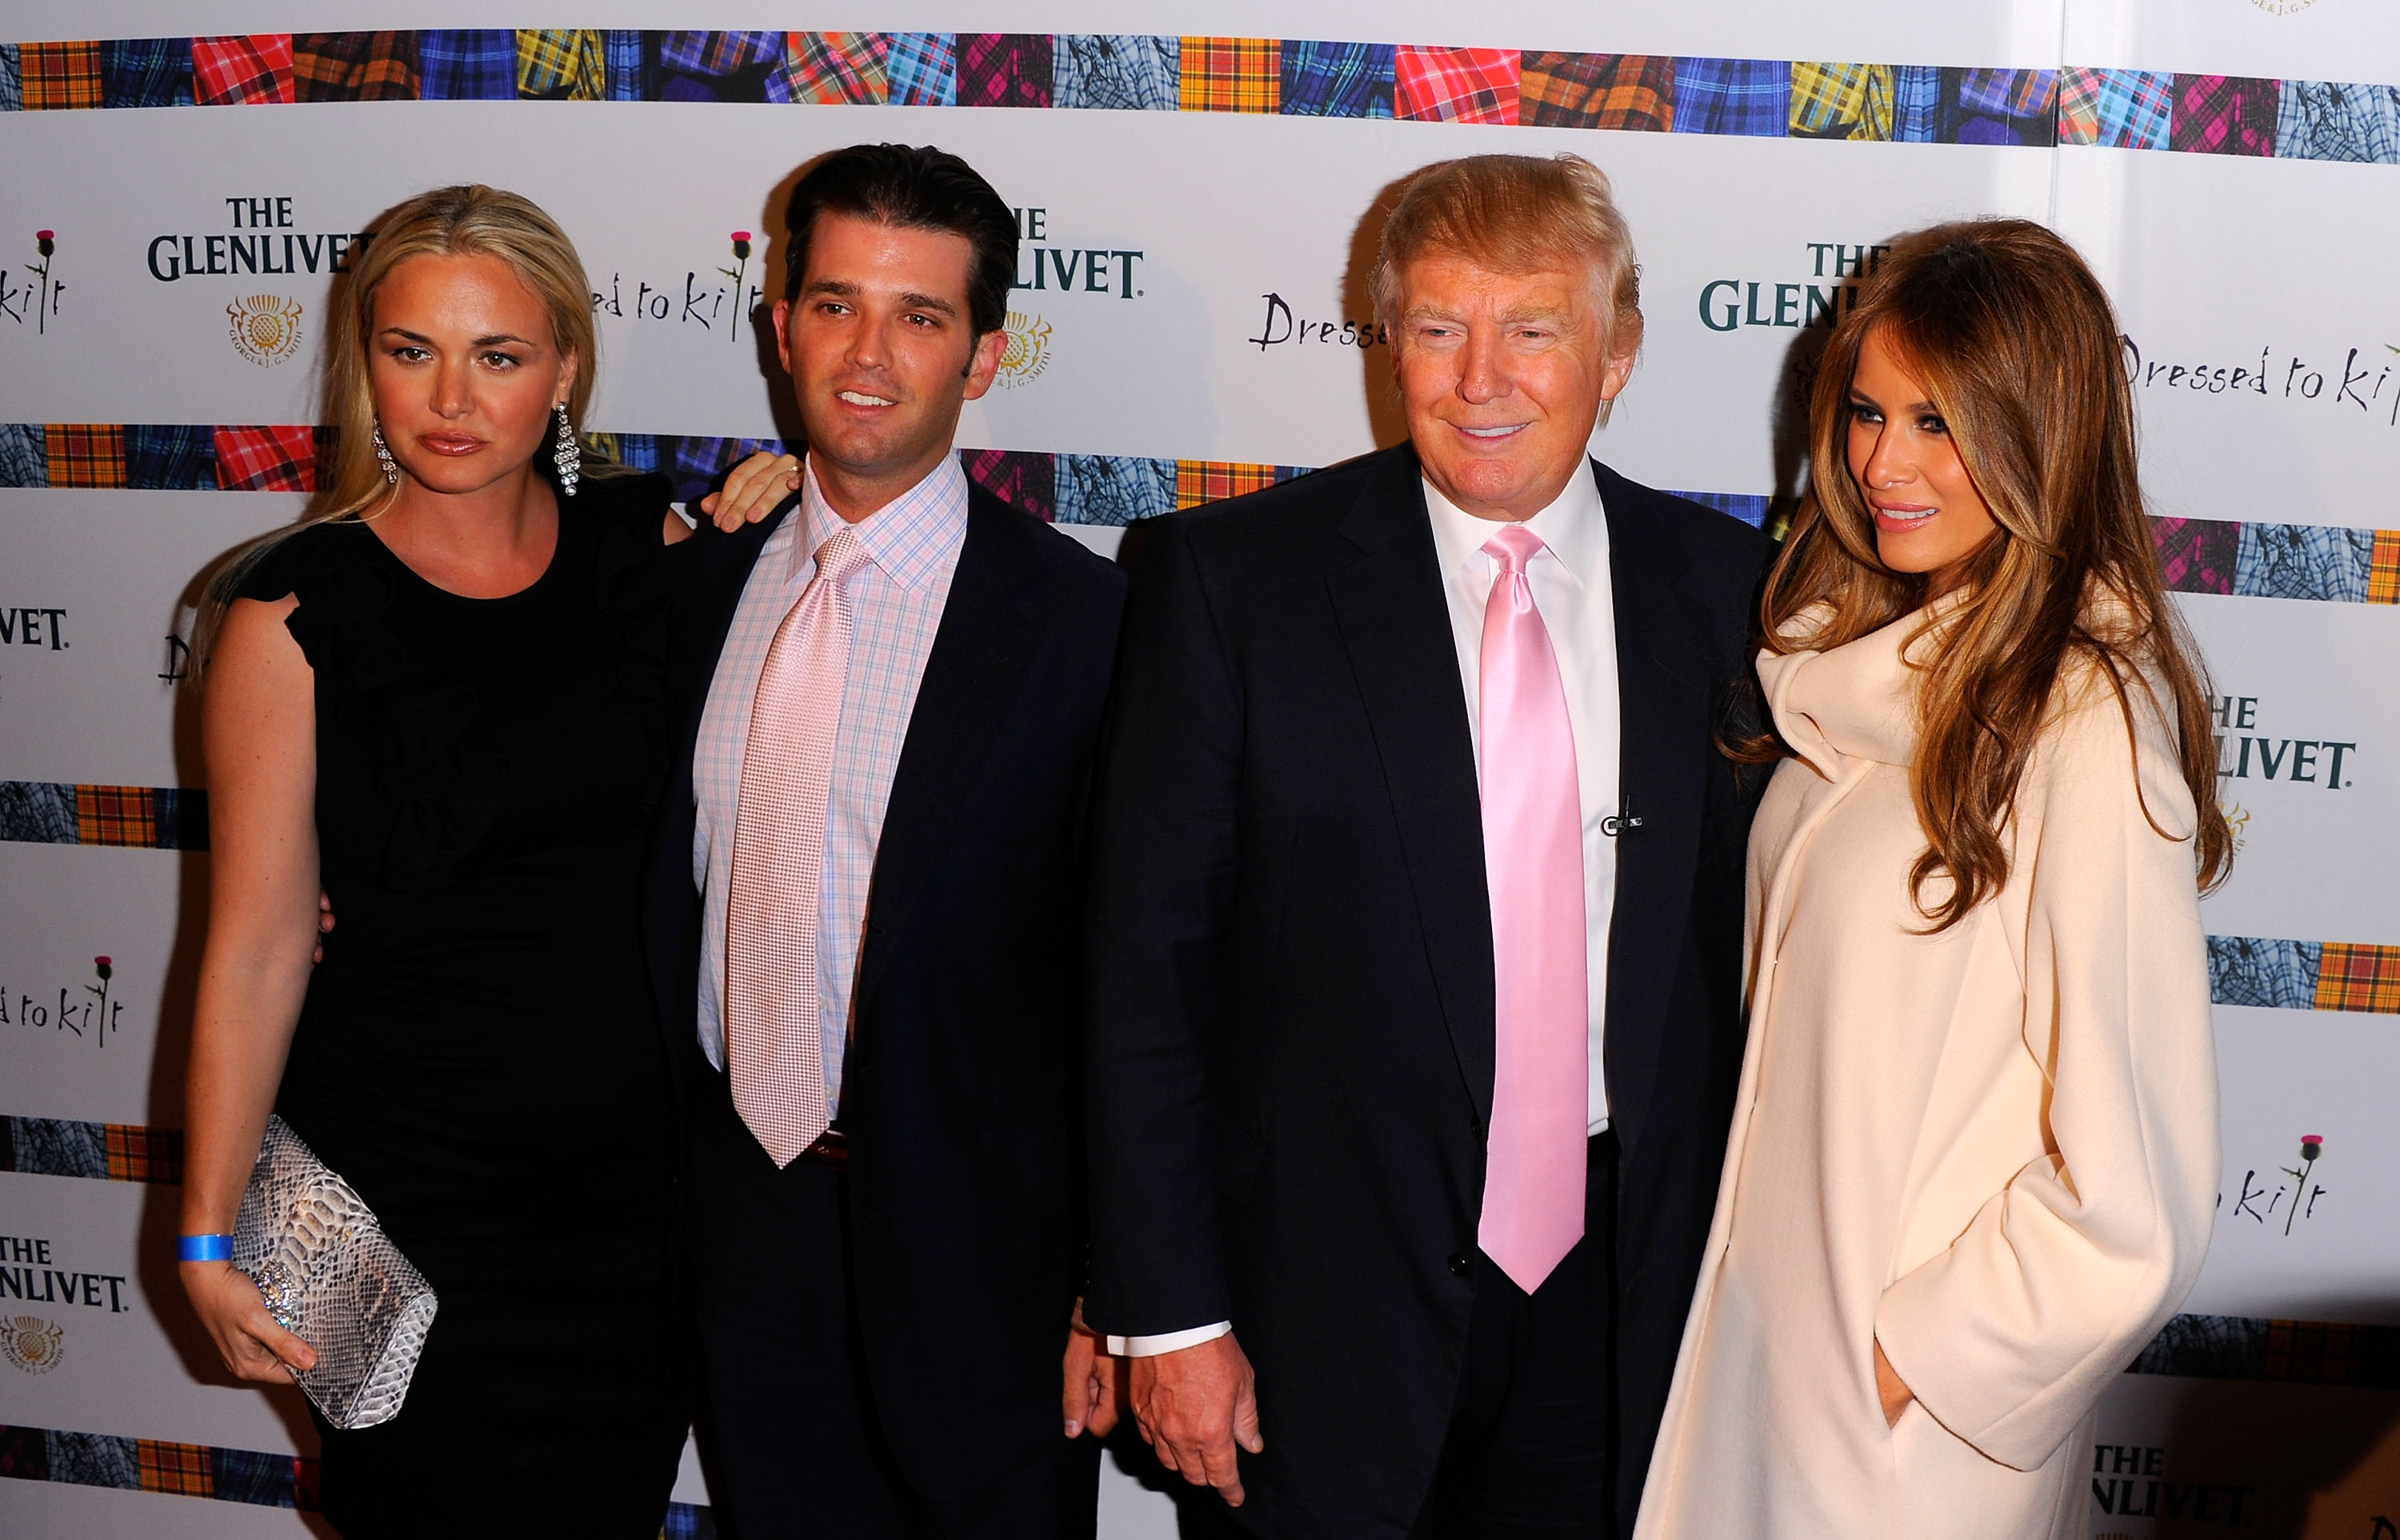 NEW YORK NY- APRIL 05  Vanessa Trump Donald Trump Jr. Donald Trump and Melania Trump attend the 9th Annual